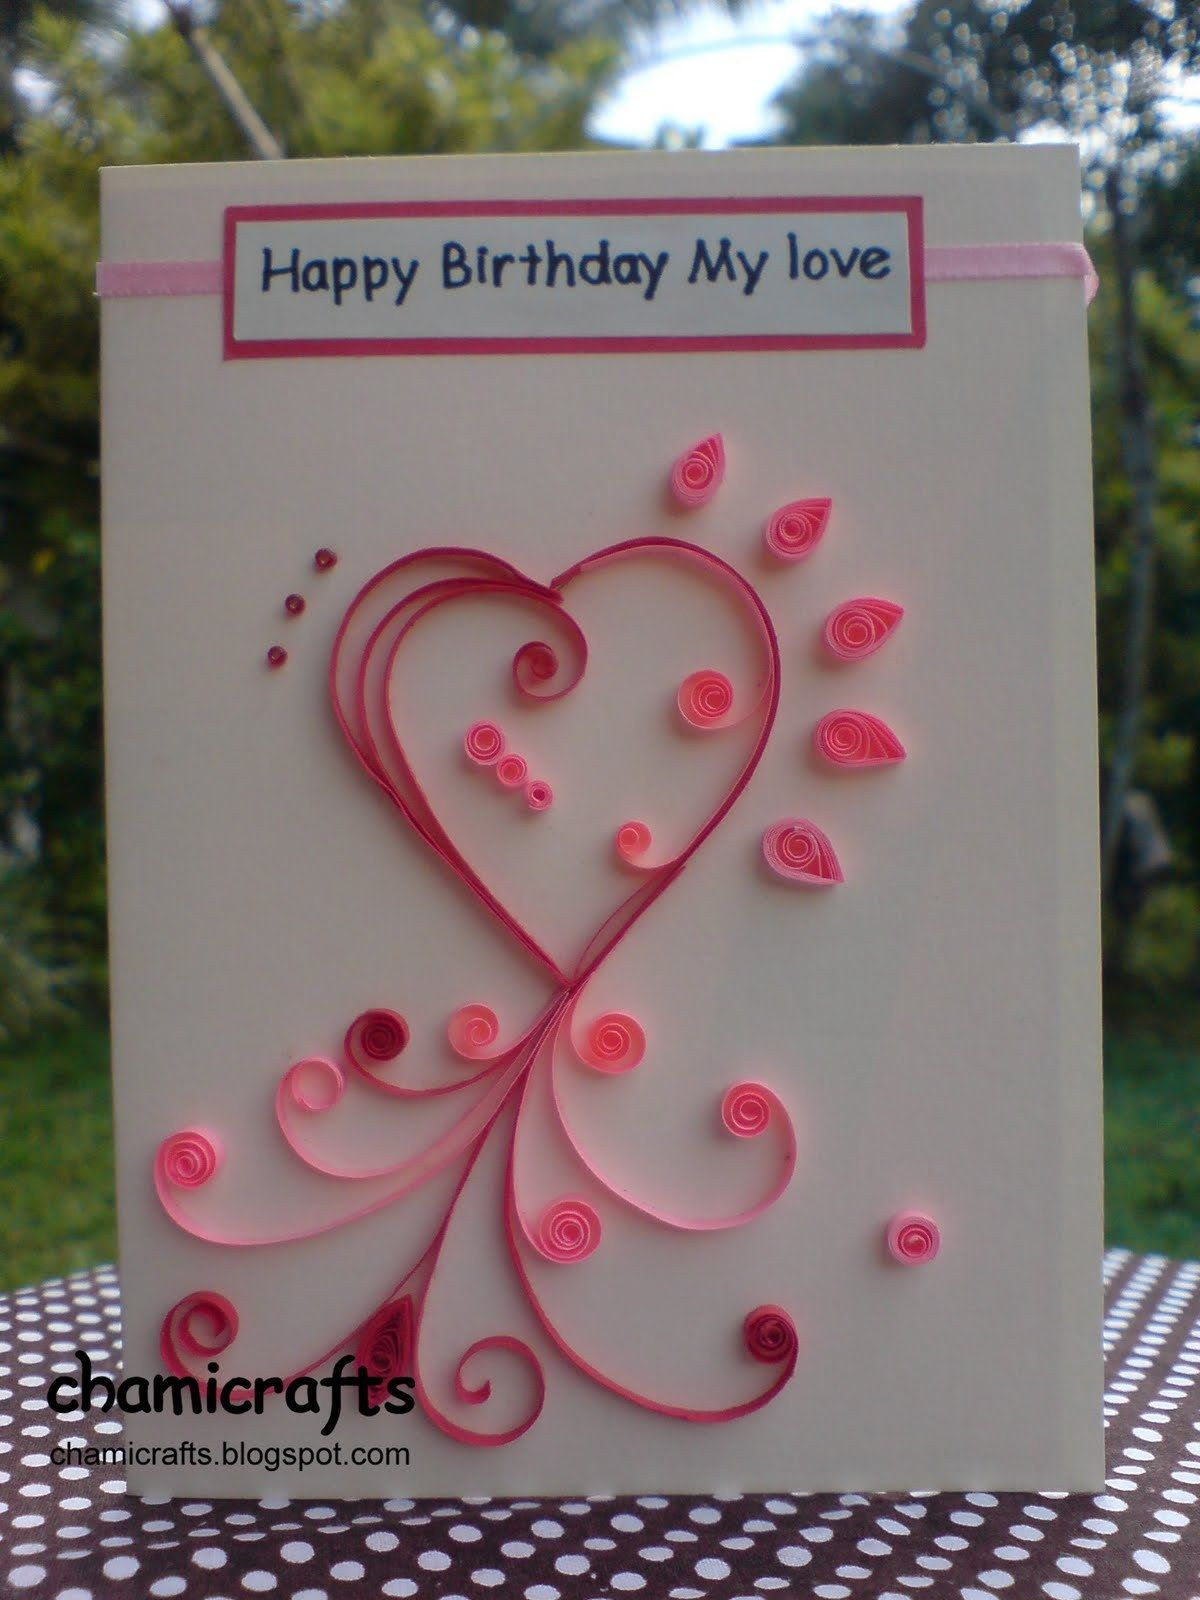 Handmade Love Greeting Cards For Boyfriend Homemade Birthday